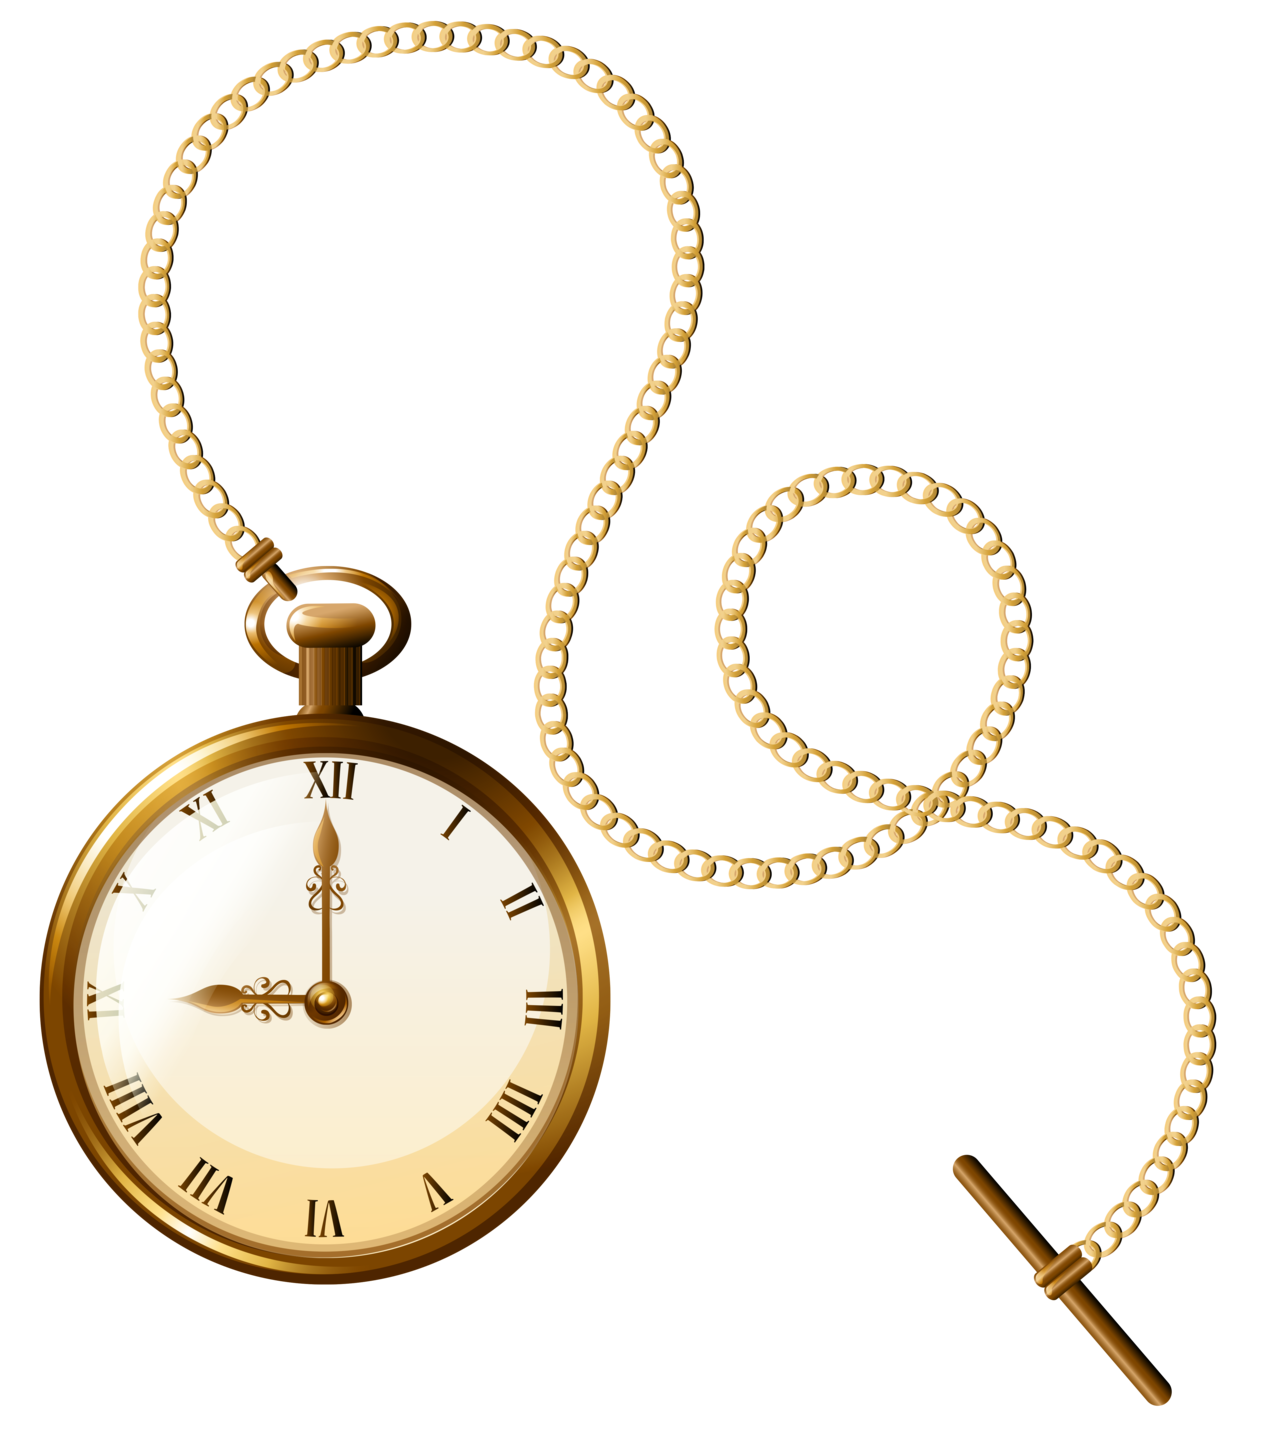 gold pocket watch clock png clip art necklace clipart black and white necklace clip art images